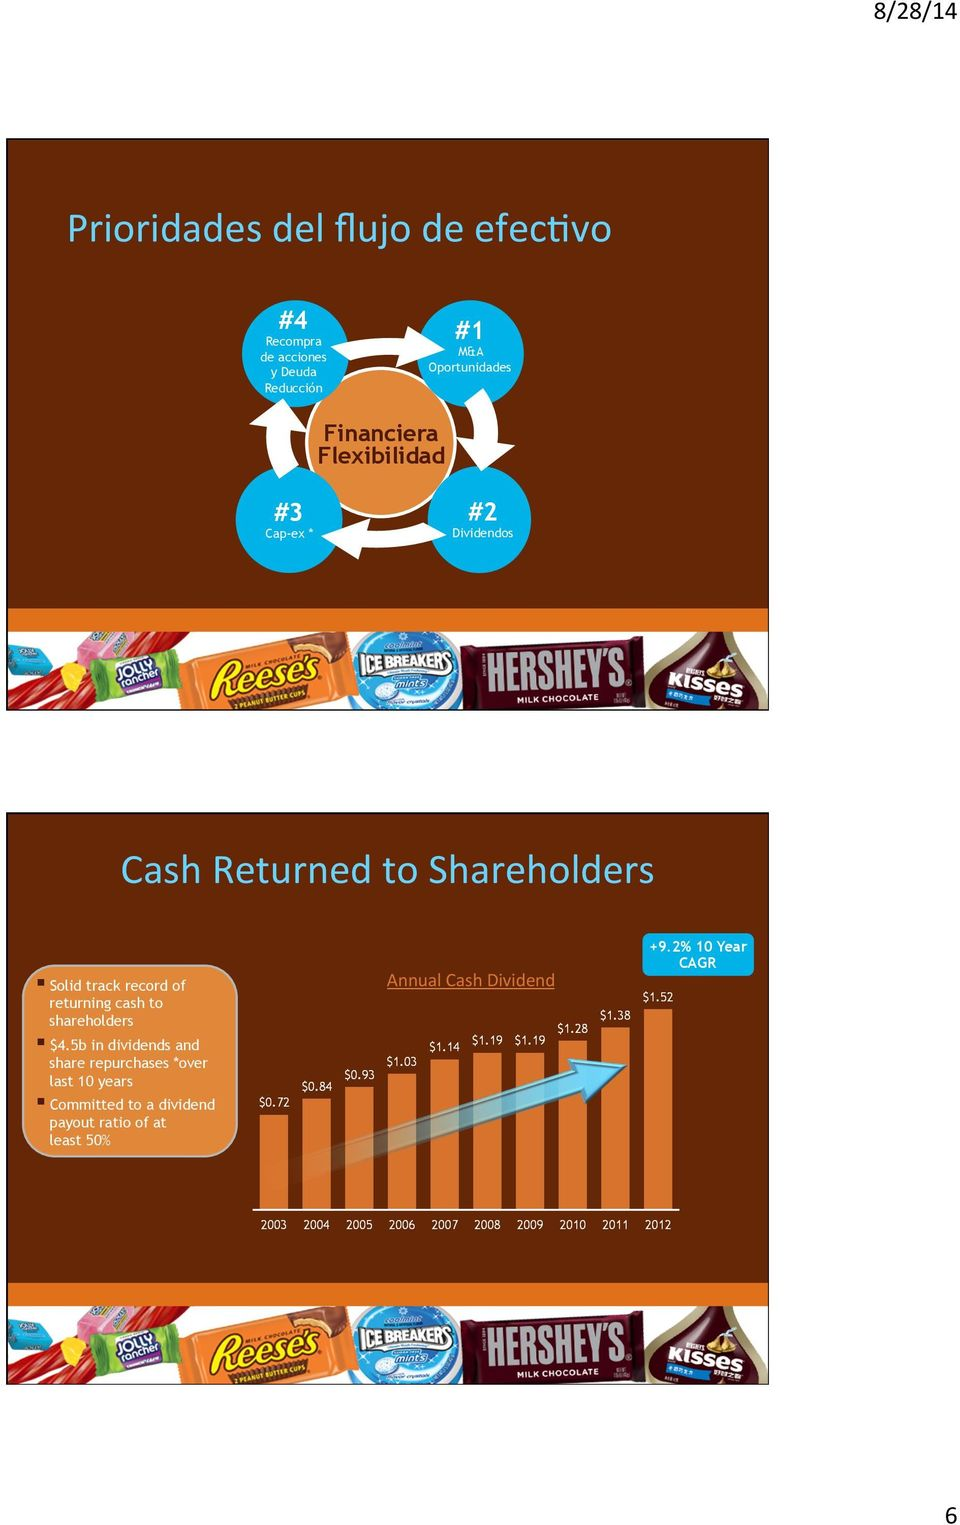 record of returning cash to shareholders $4.